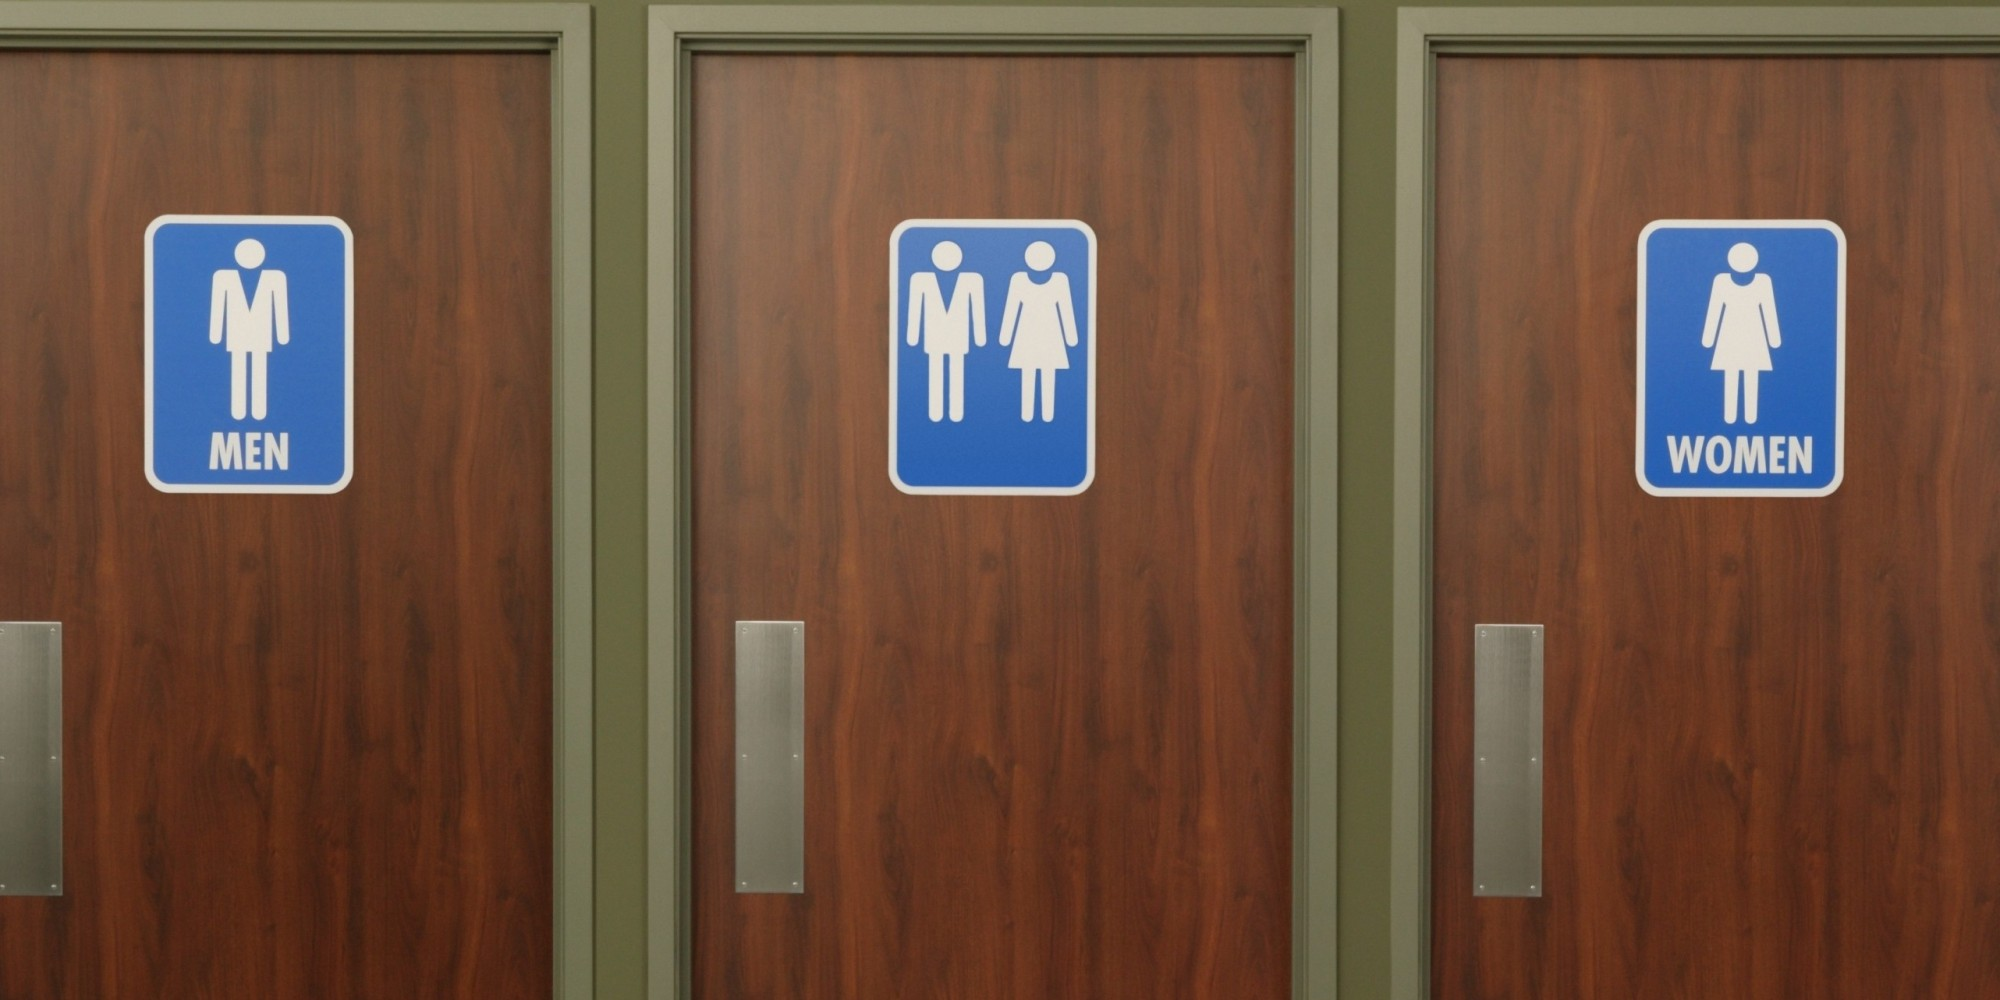 Poll Shows The Majority Of Americans Oppose Transgender